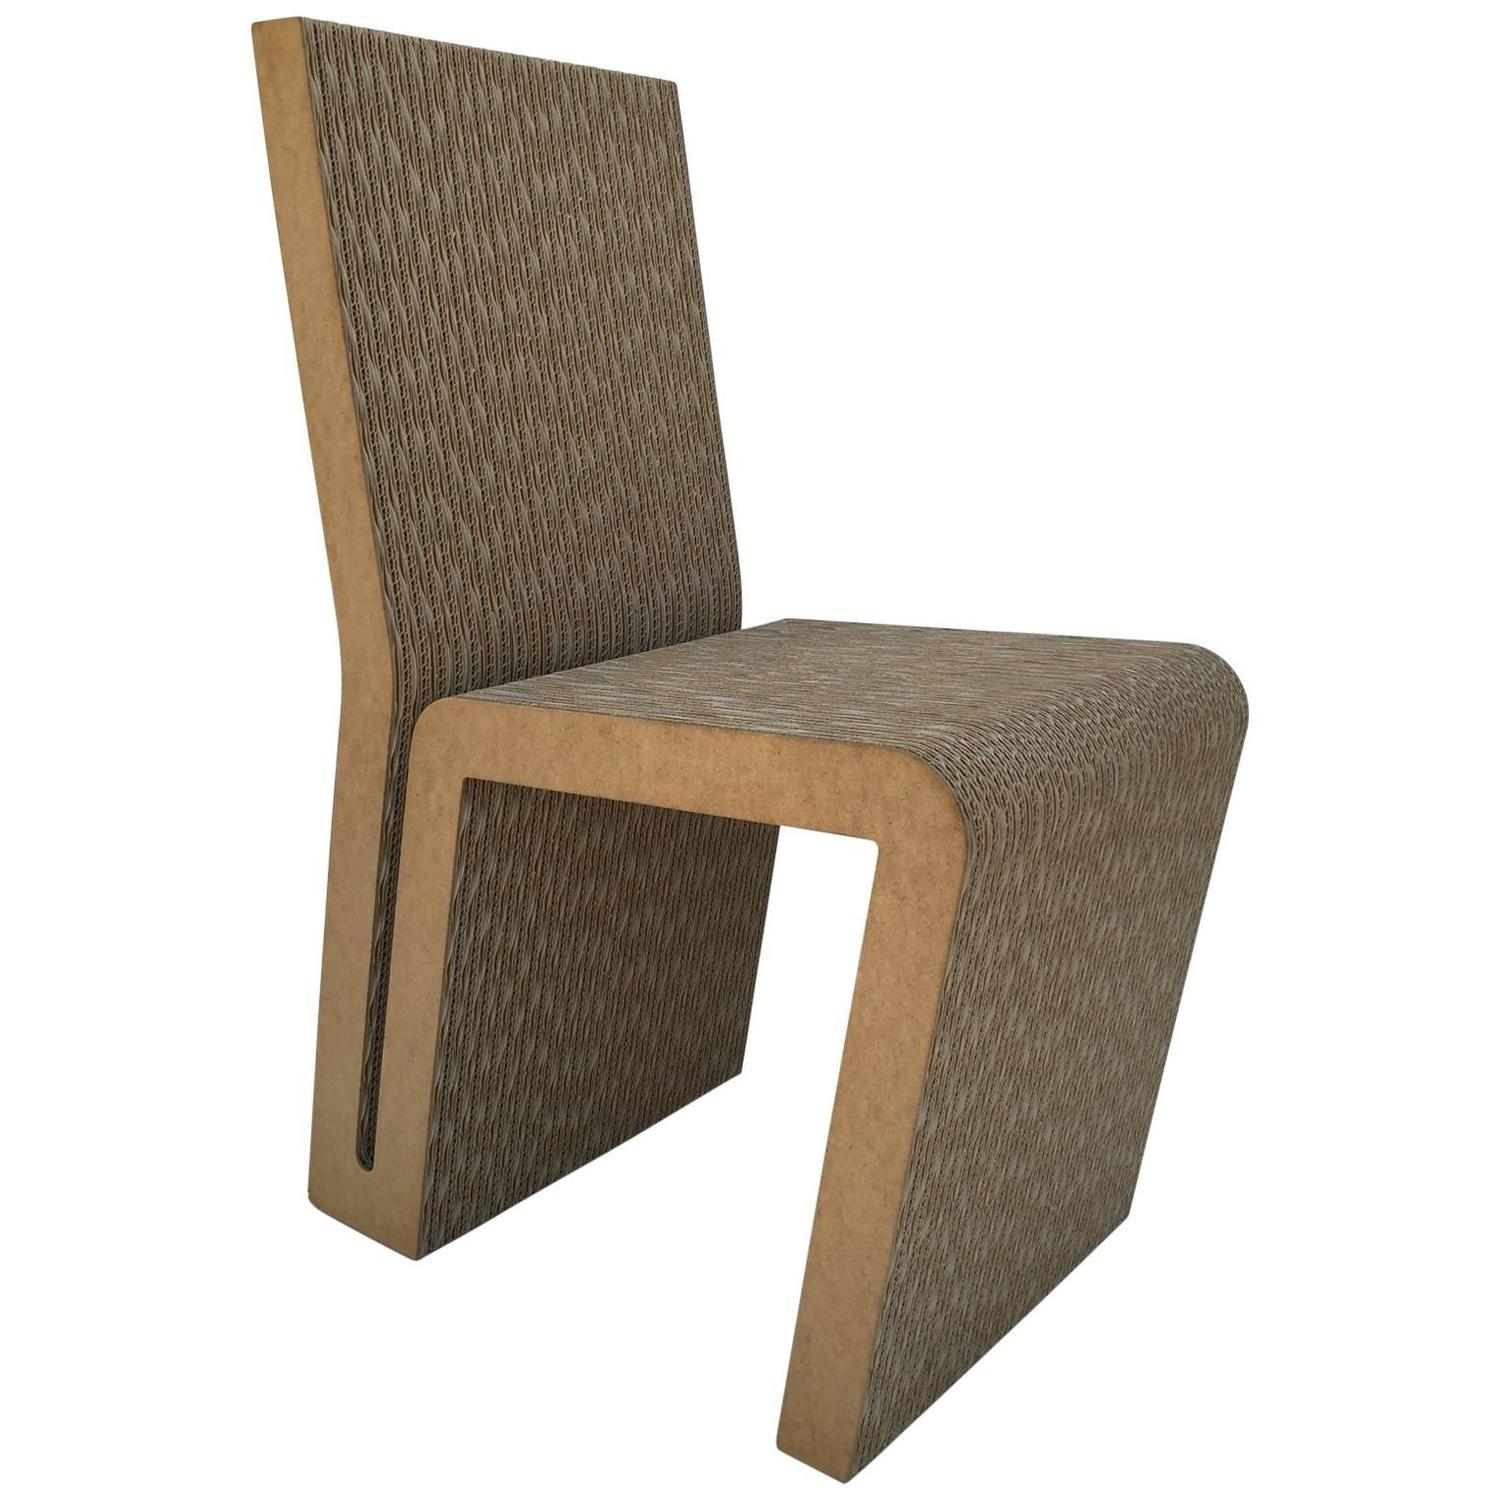 frank gehry cardboard chair mickey mouse recliner easy edges side by for sale at